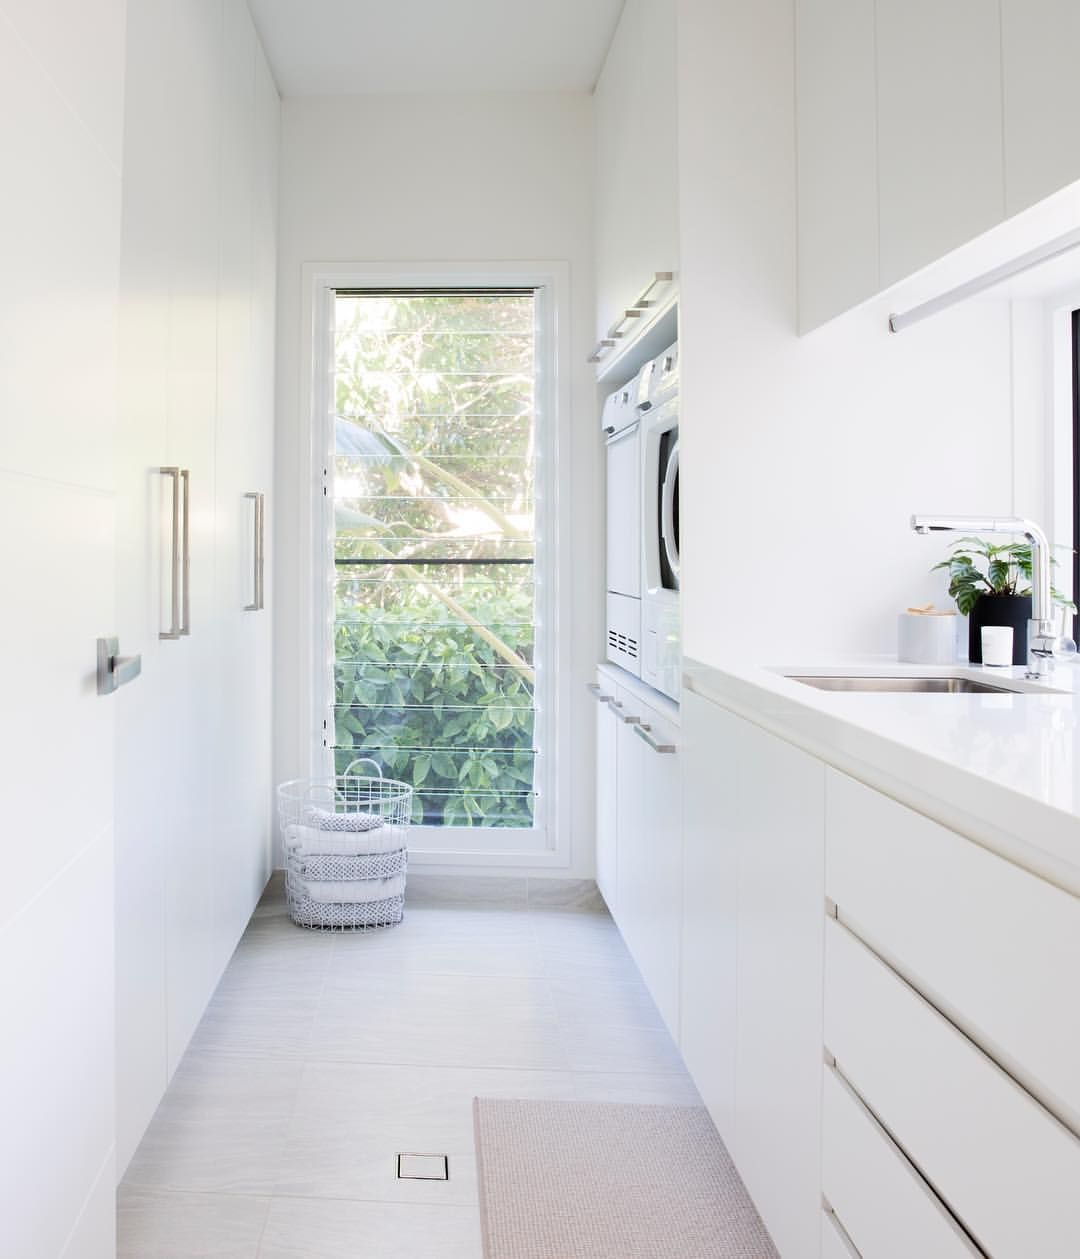 Laundry Cupboard Designs: Pin By Melinda Pierce On HumbleHome In 2019